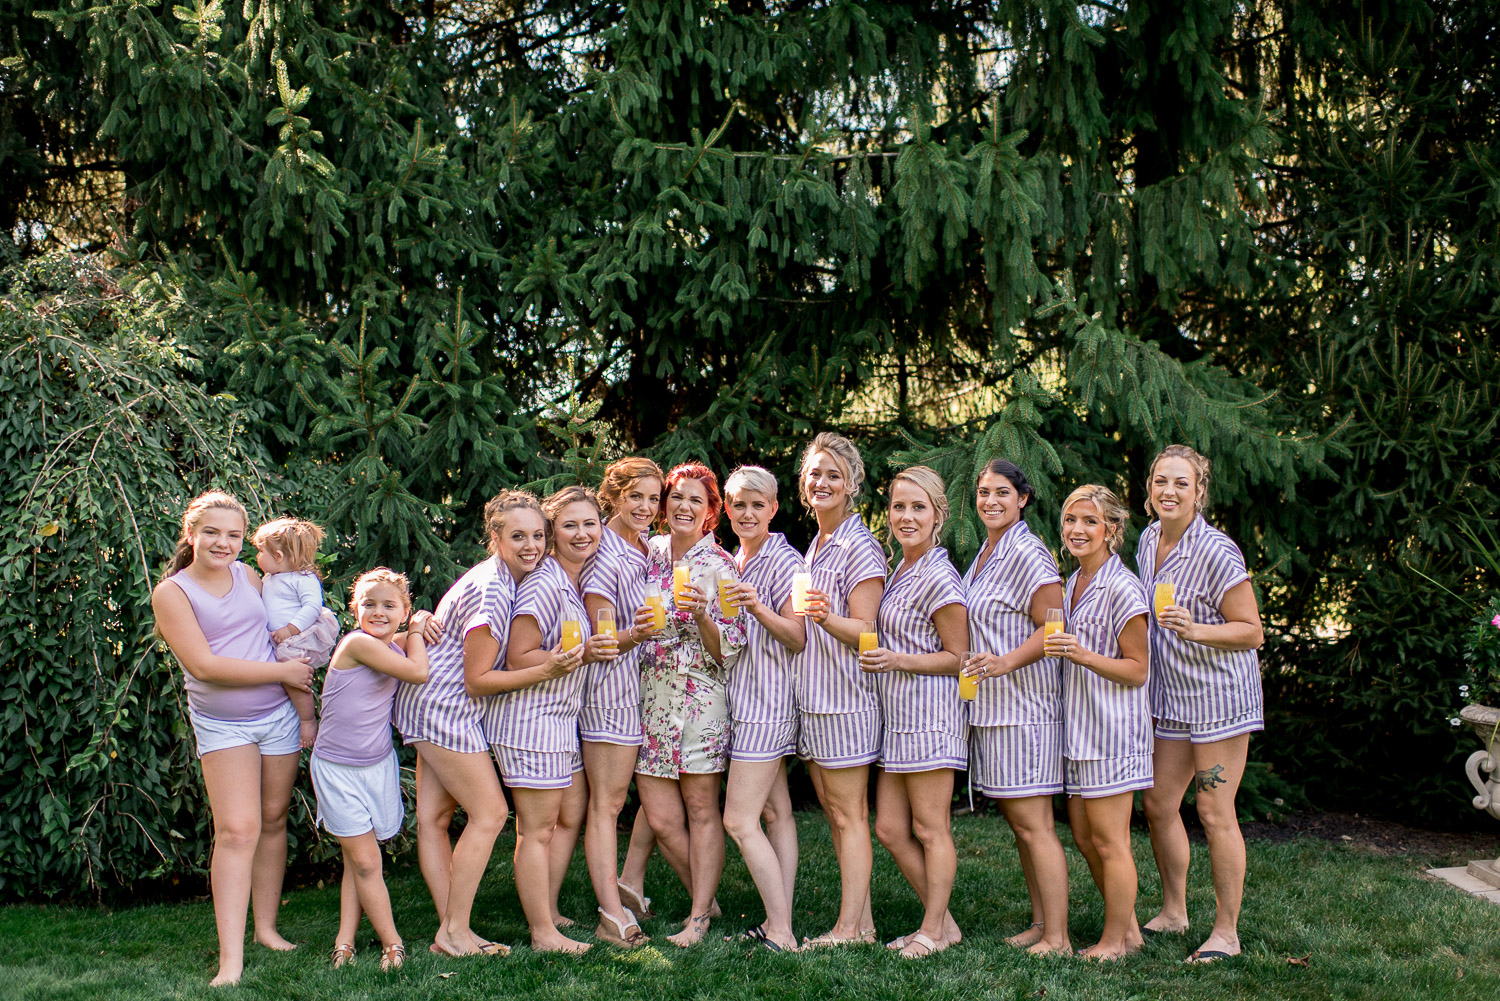 bride and bridesmaids in striped pajamas